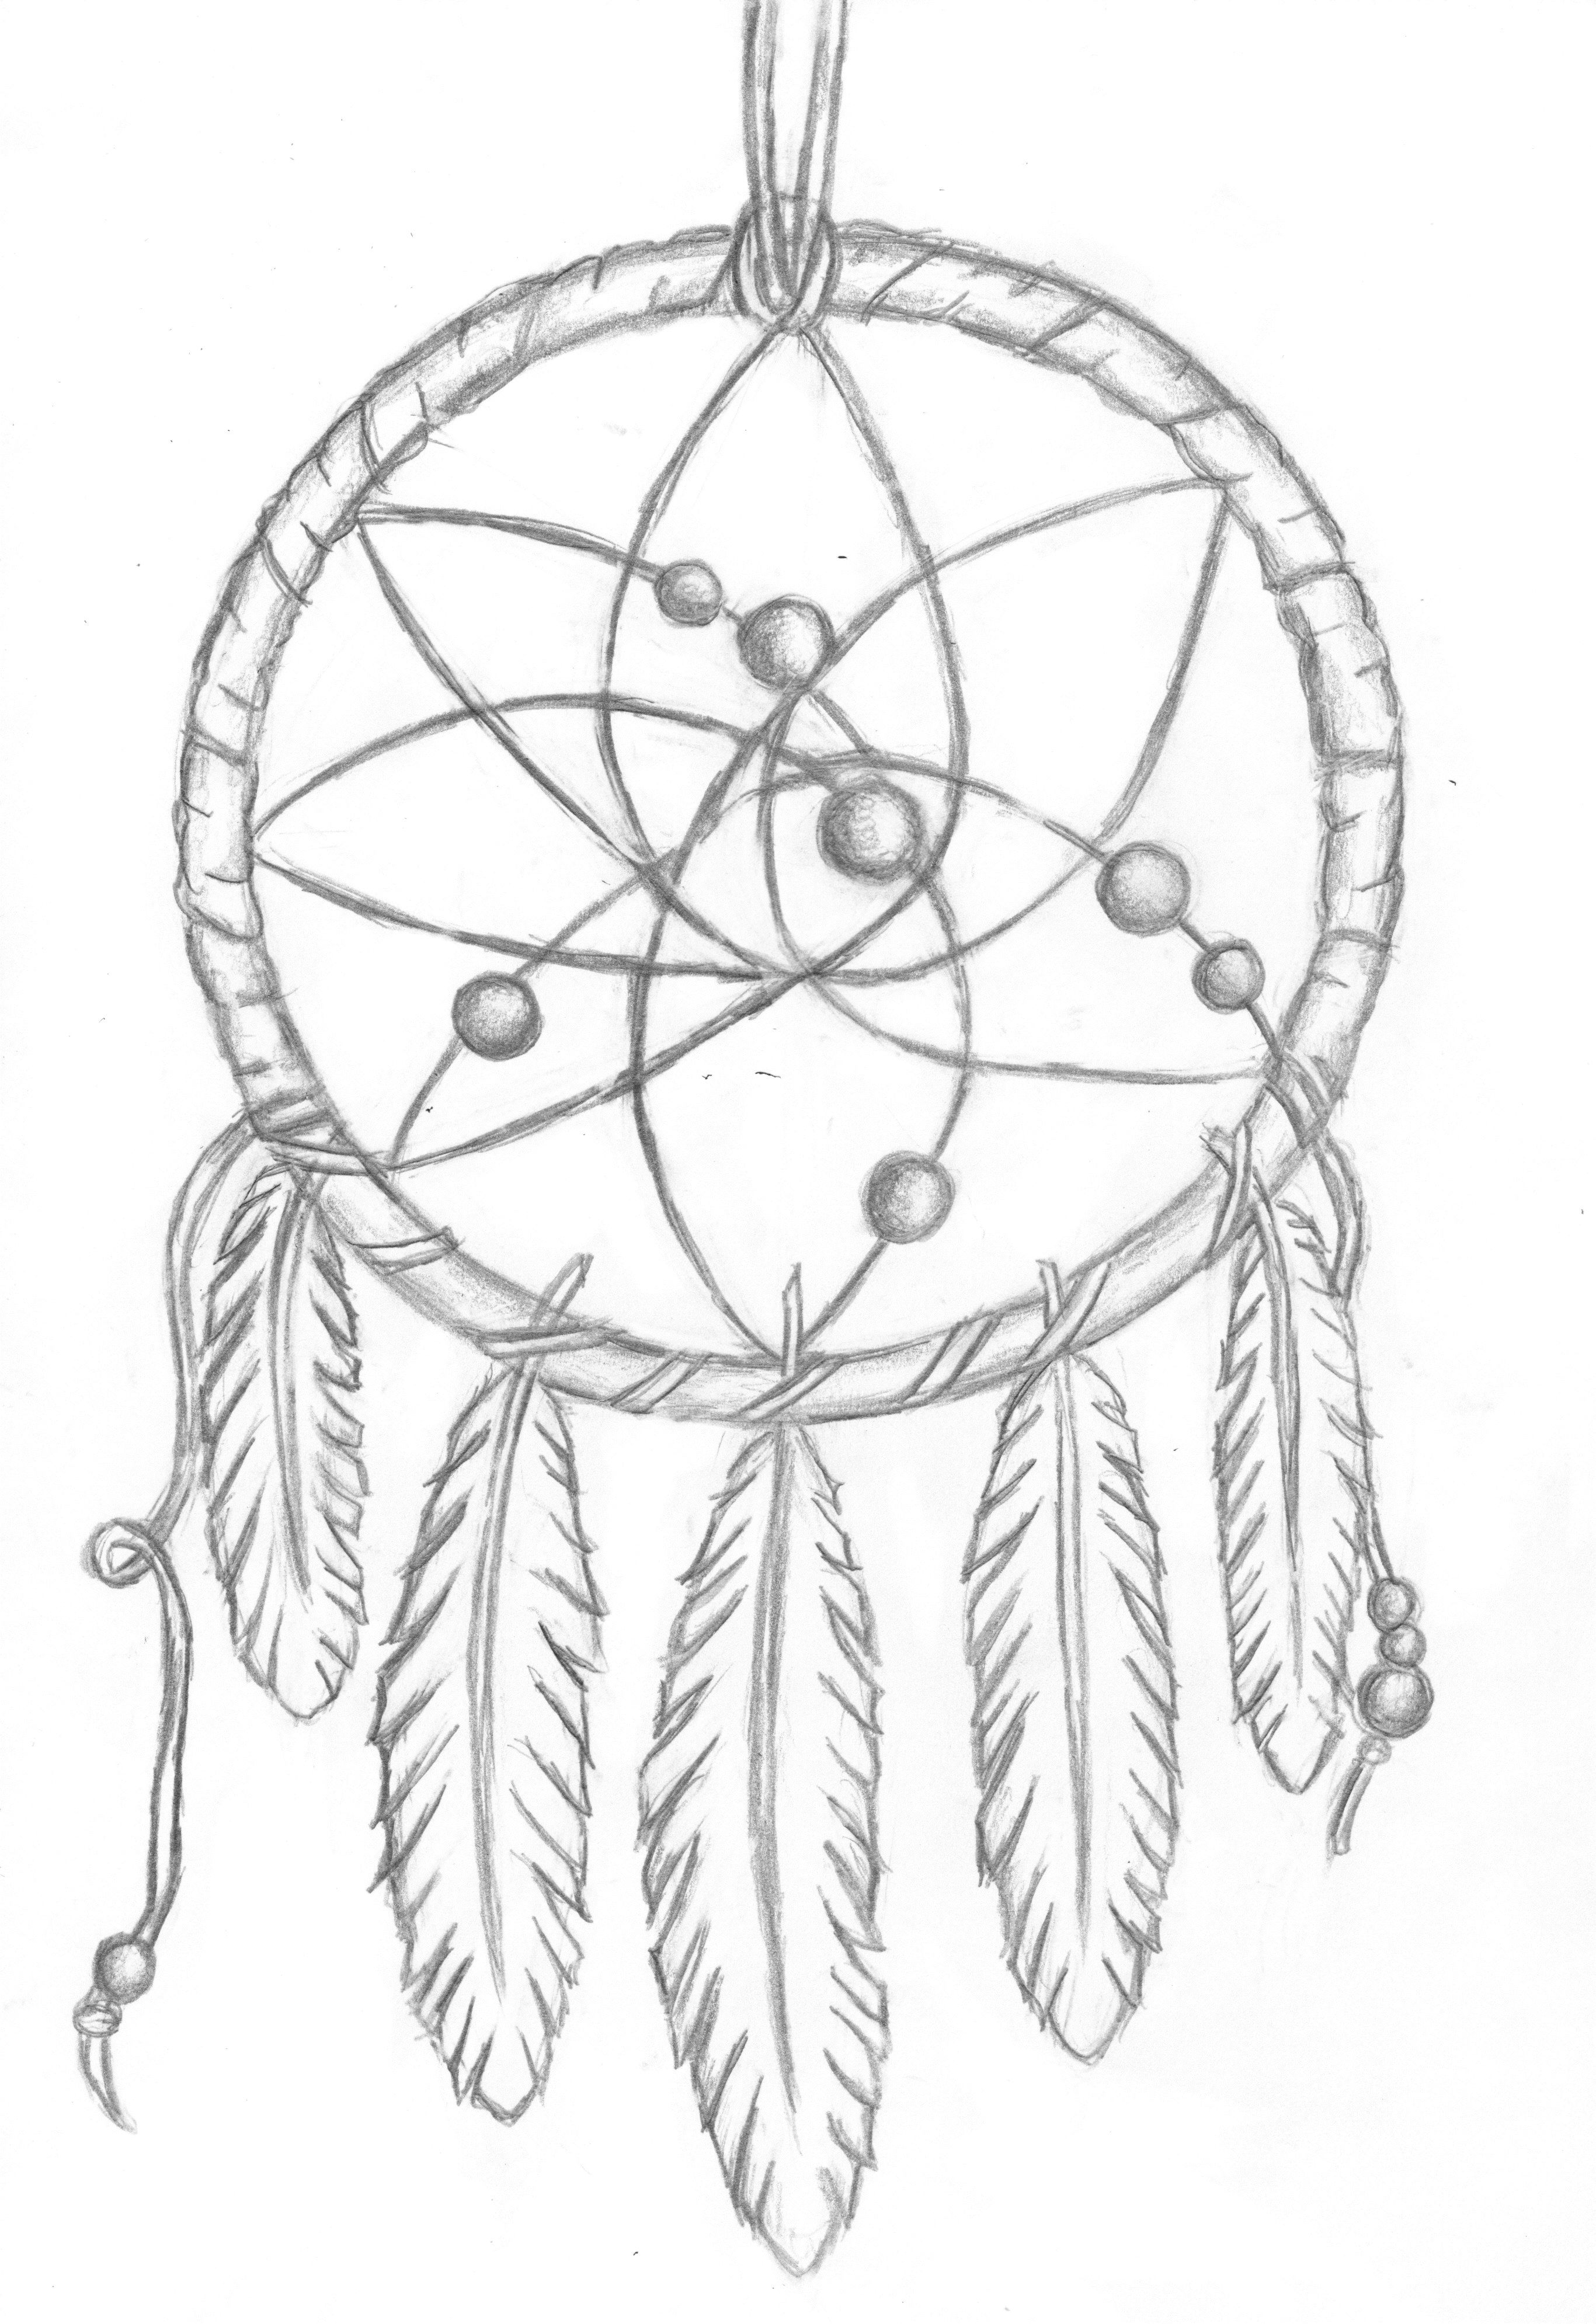 Simple Dream Catcher Drawing : simple, dream, catcher, drawing, Dreamcatcher, Drawing, SummerOfLove, Dream, Catcher, Coloring, Pages,, Drawing,